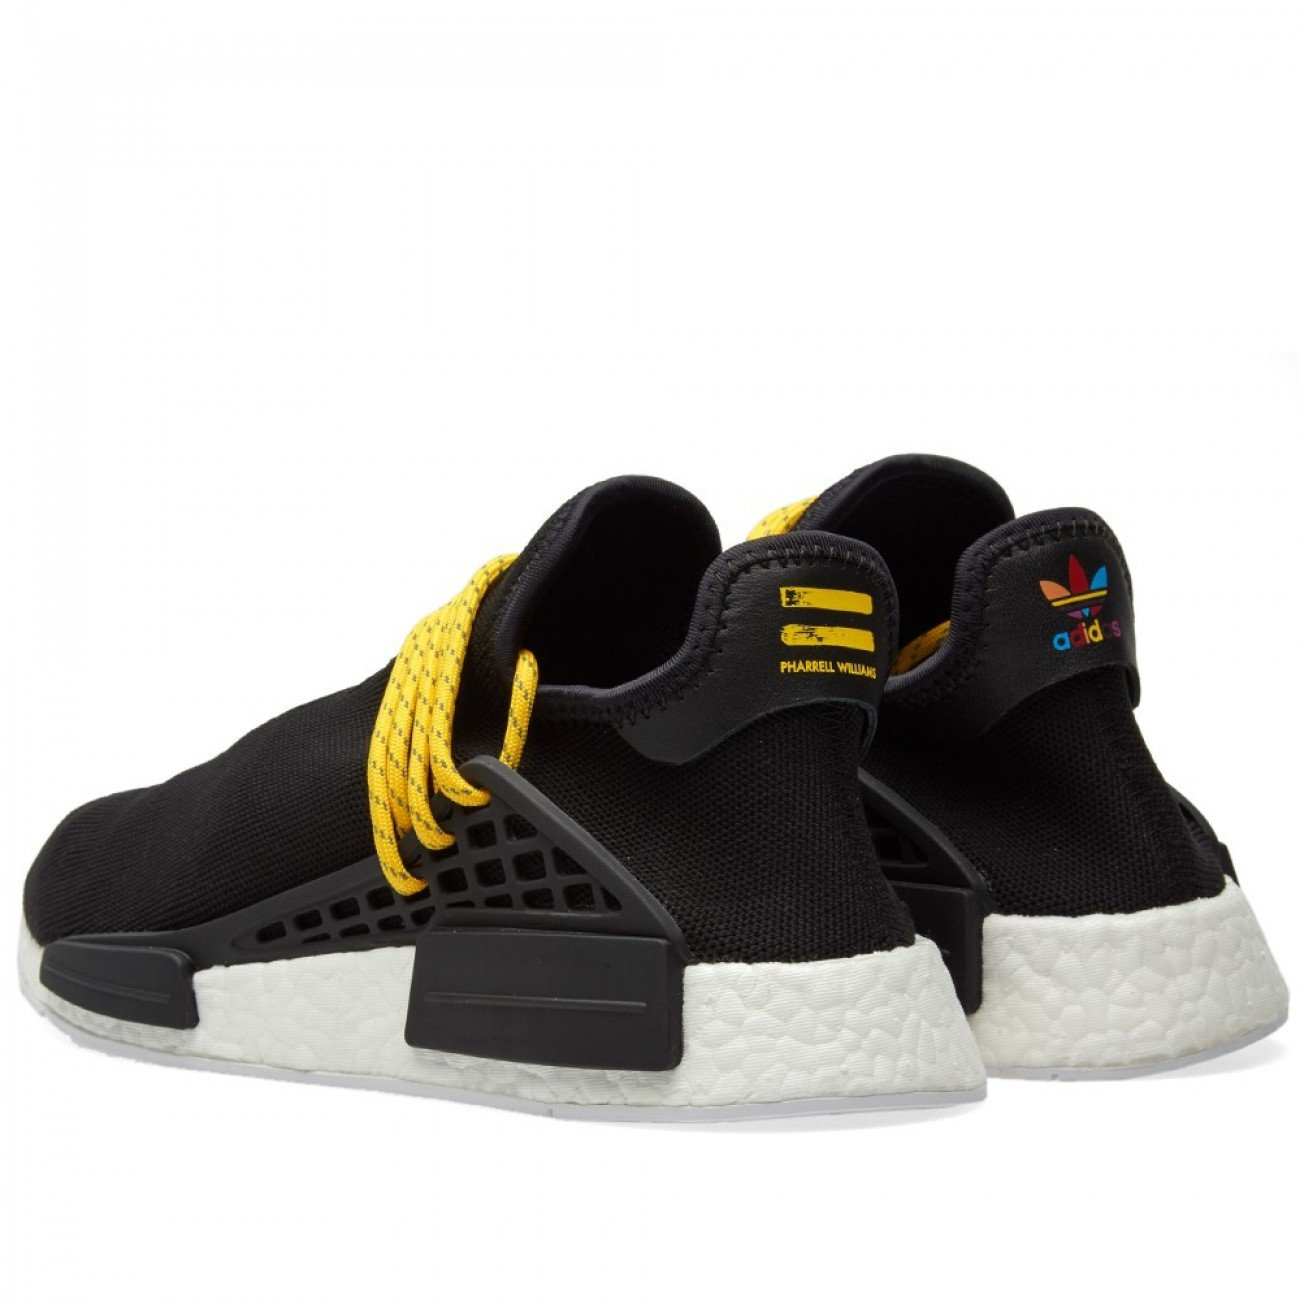 0c960ab72 Adidas x Pharrell NMD - Human Race - Black - Size UK 7- Brand New   Amazon.co.uk  Shoes   Bags